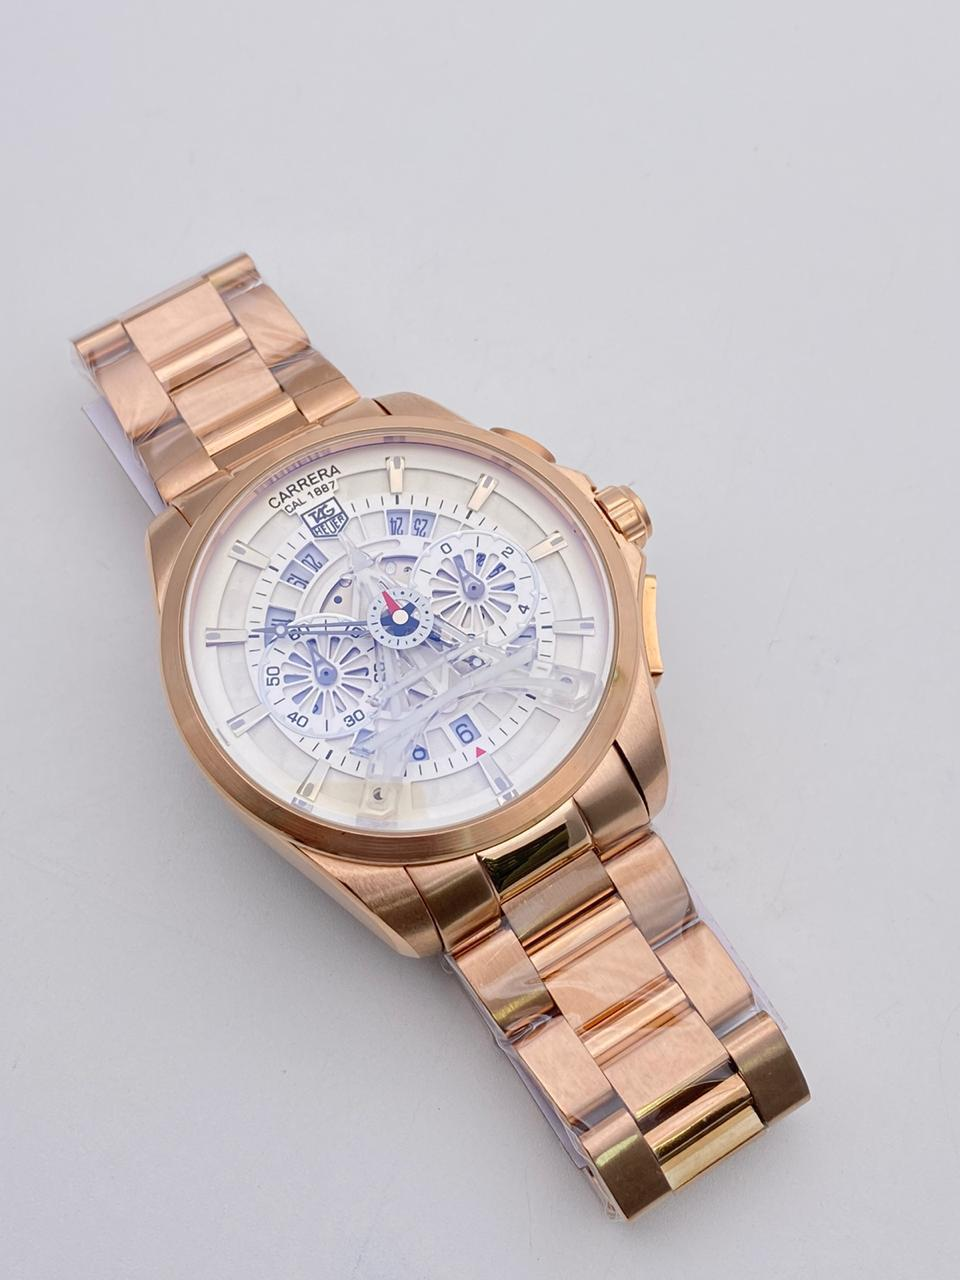 Tag heuer rose gold refurbished - lallntop.com